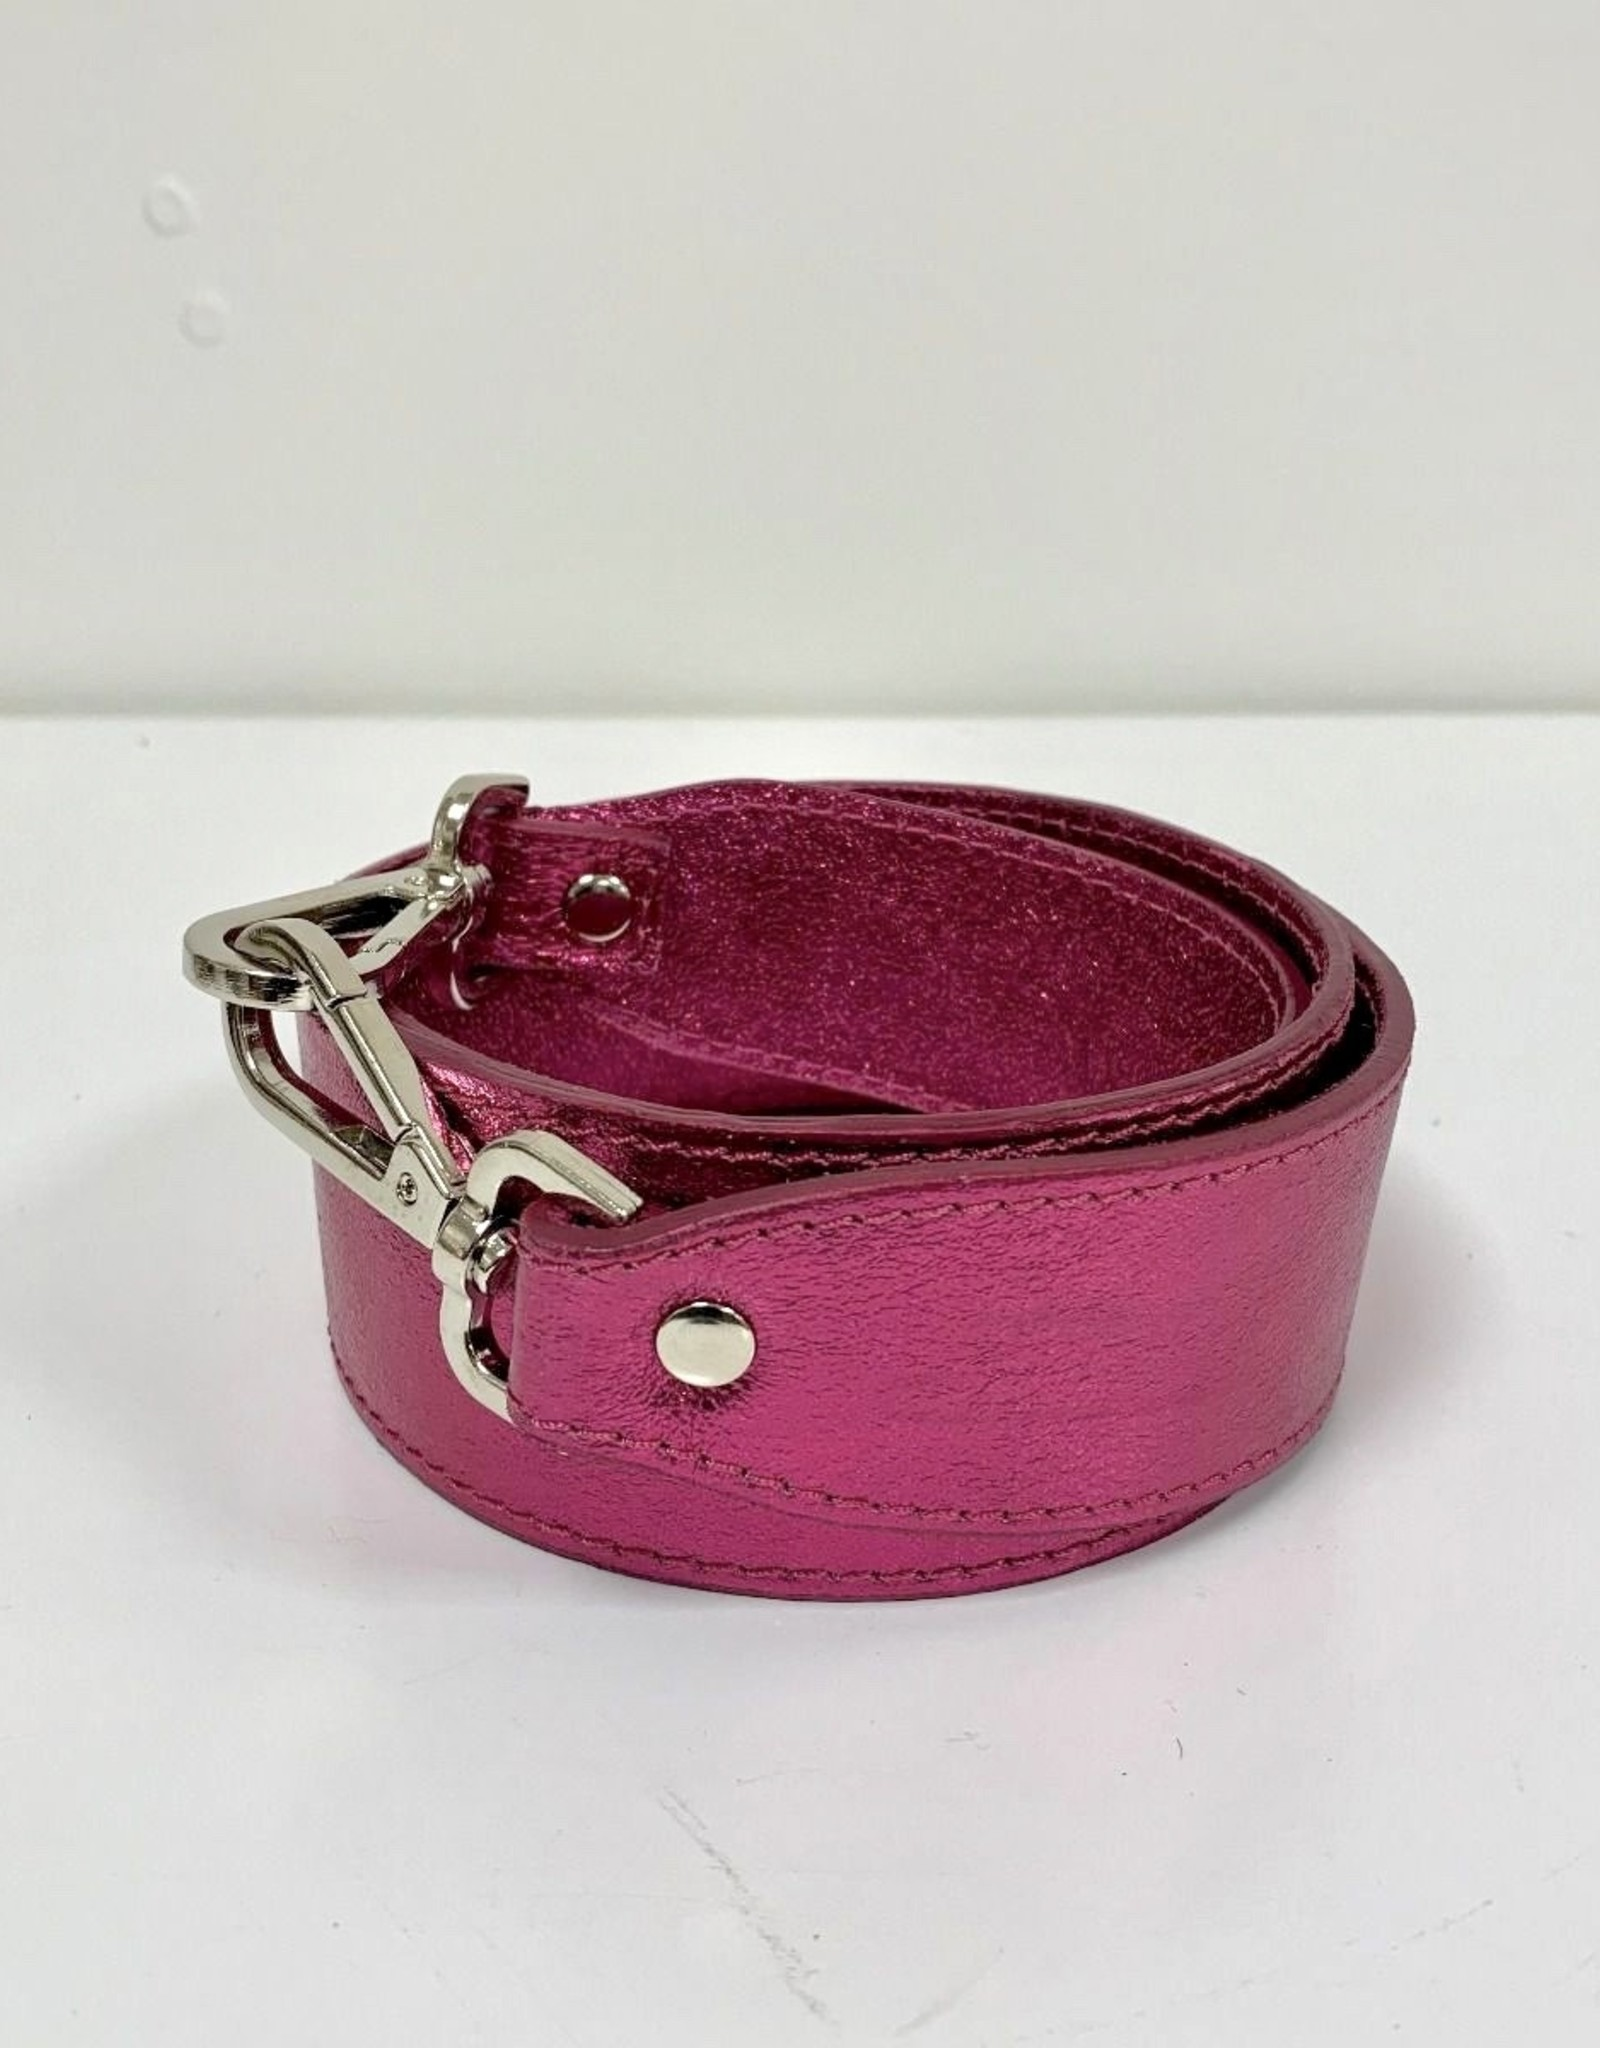 Rebelz Bag Strap Metallic Pink